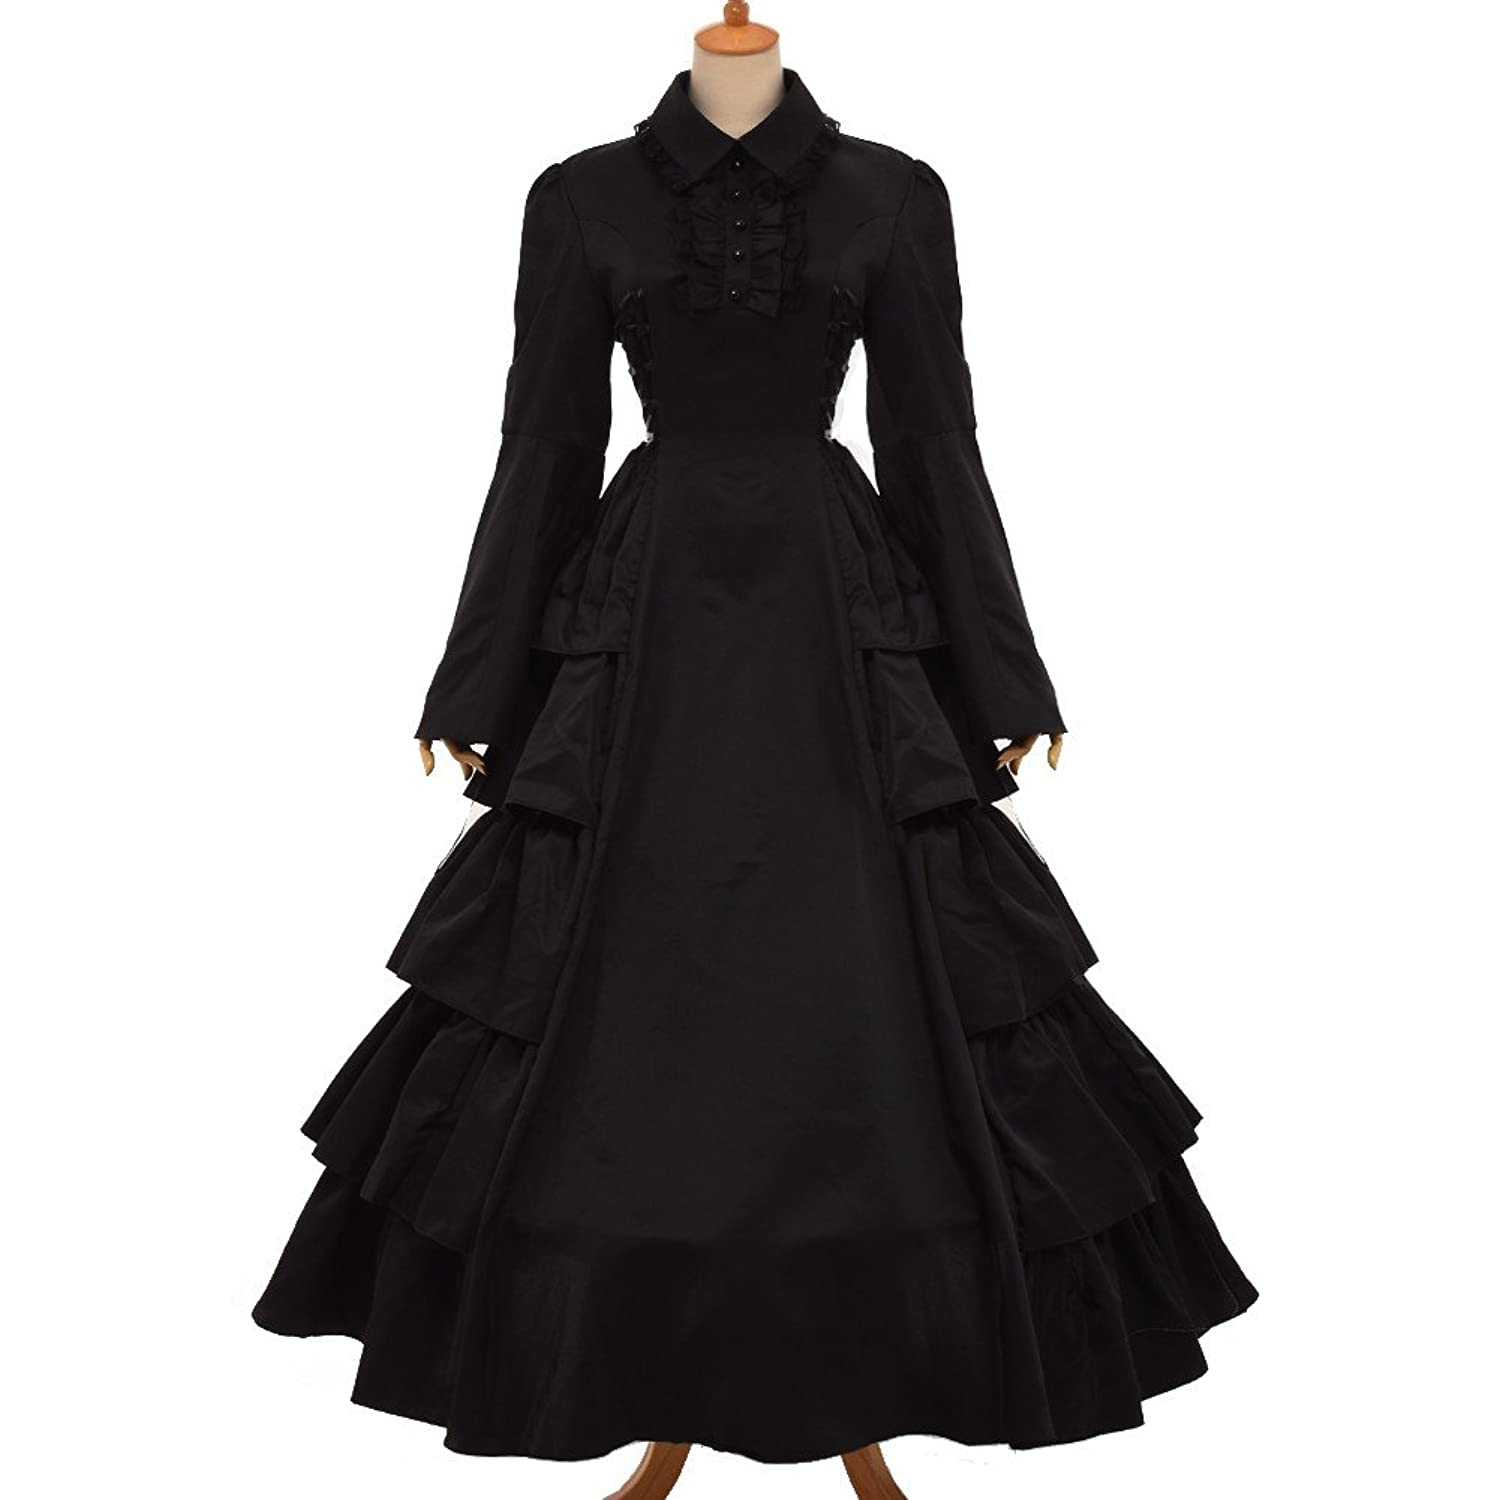 Victorian Dresses | Victorian Ballgowns | Victorian Clothing Victorian Gothic Ball Gown Dress Cosutume  AT vintagedancer.com